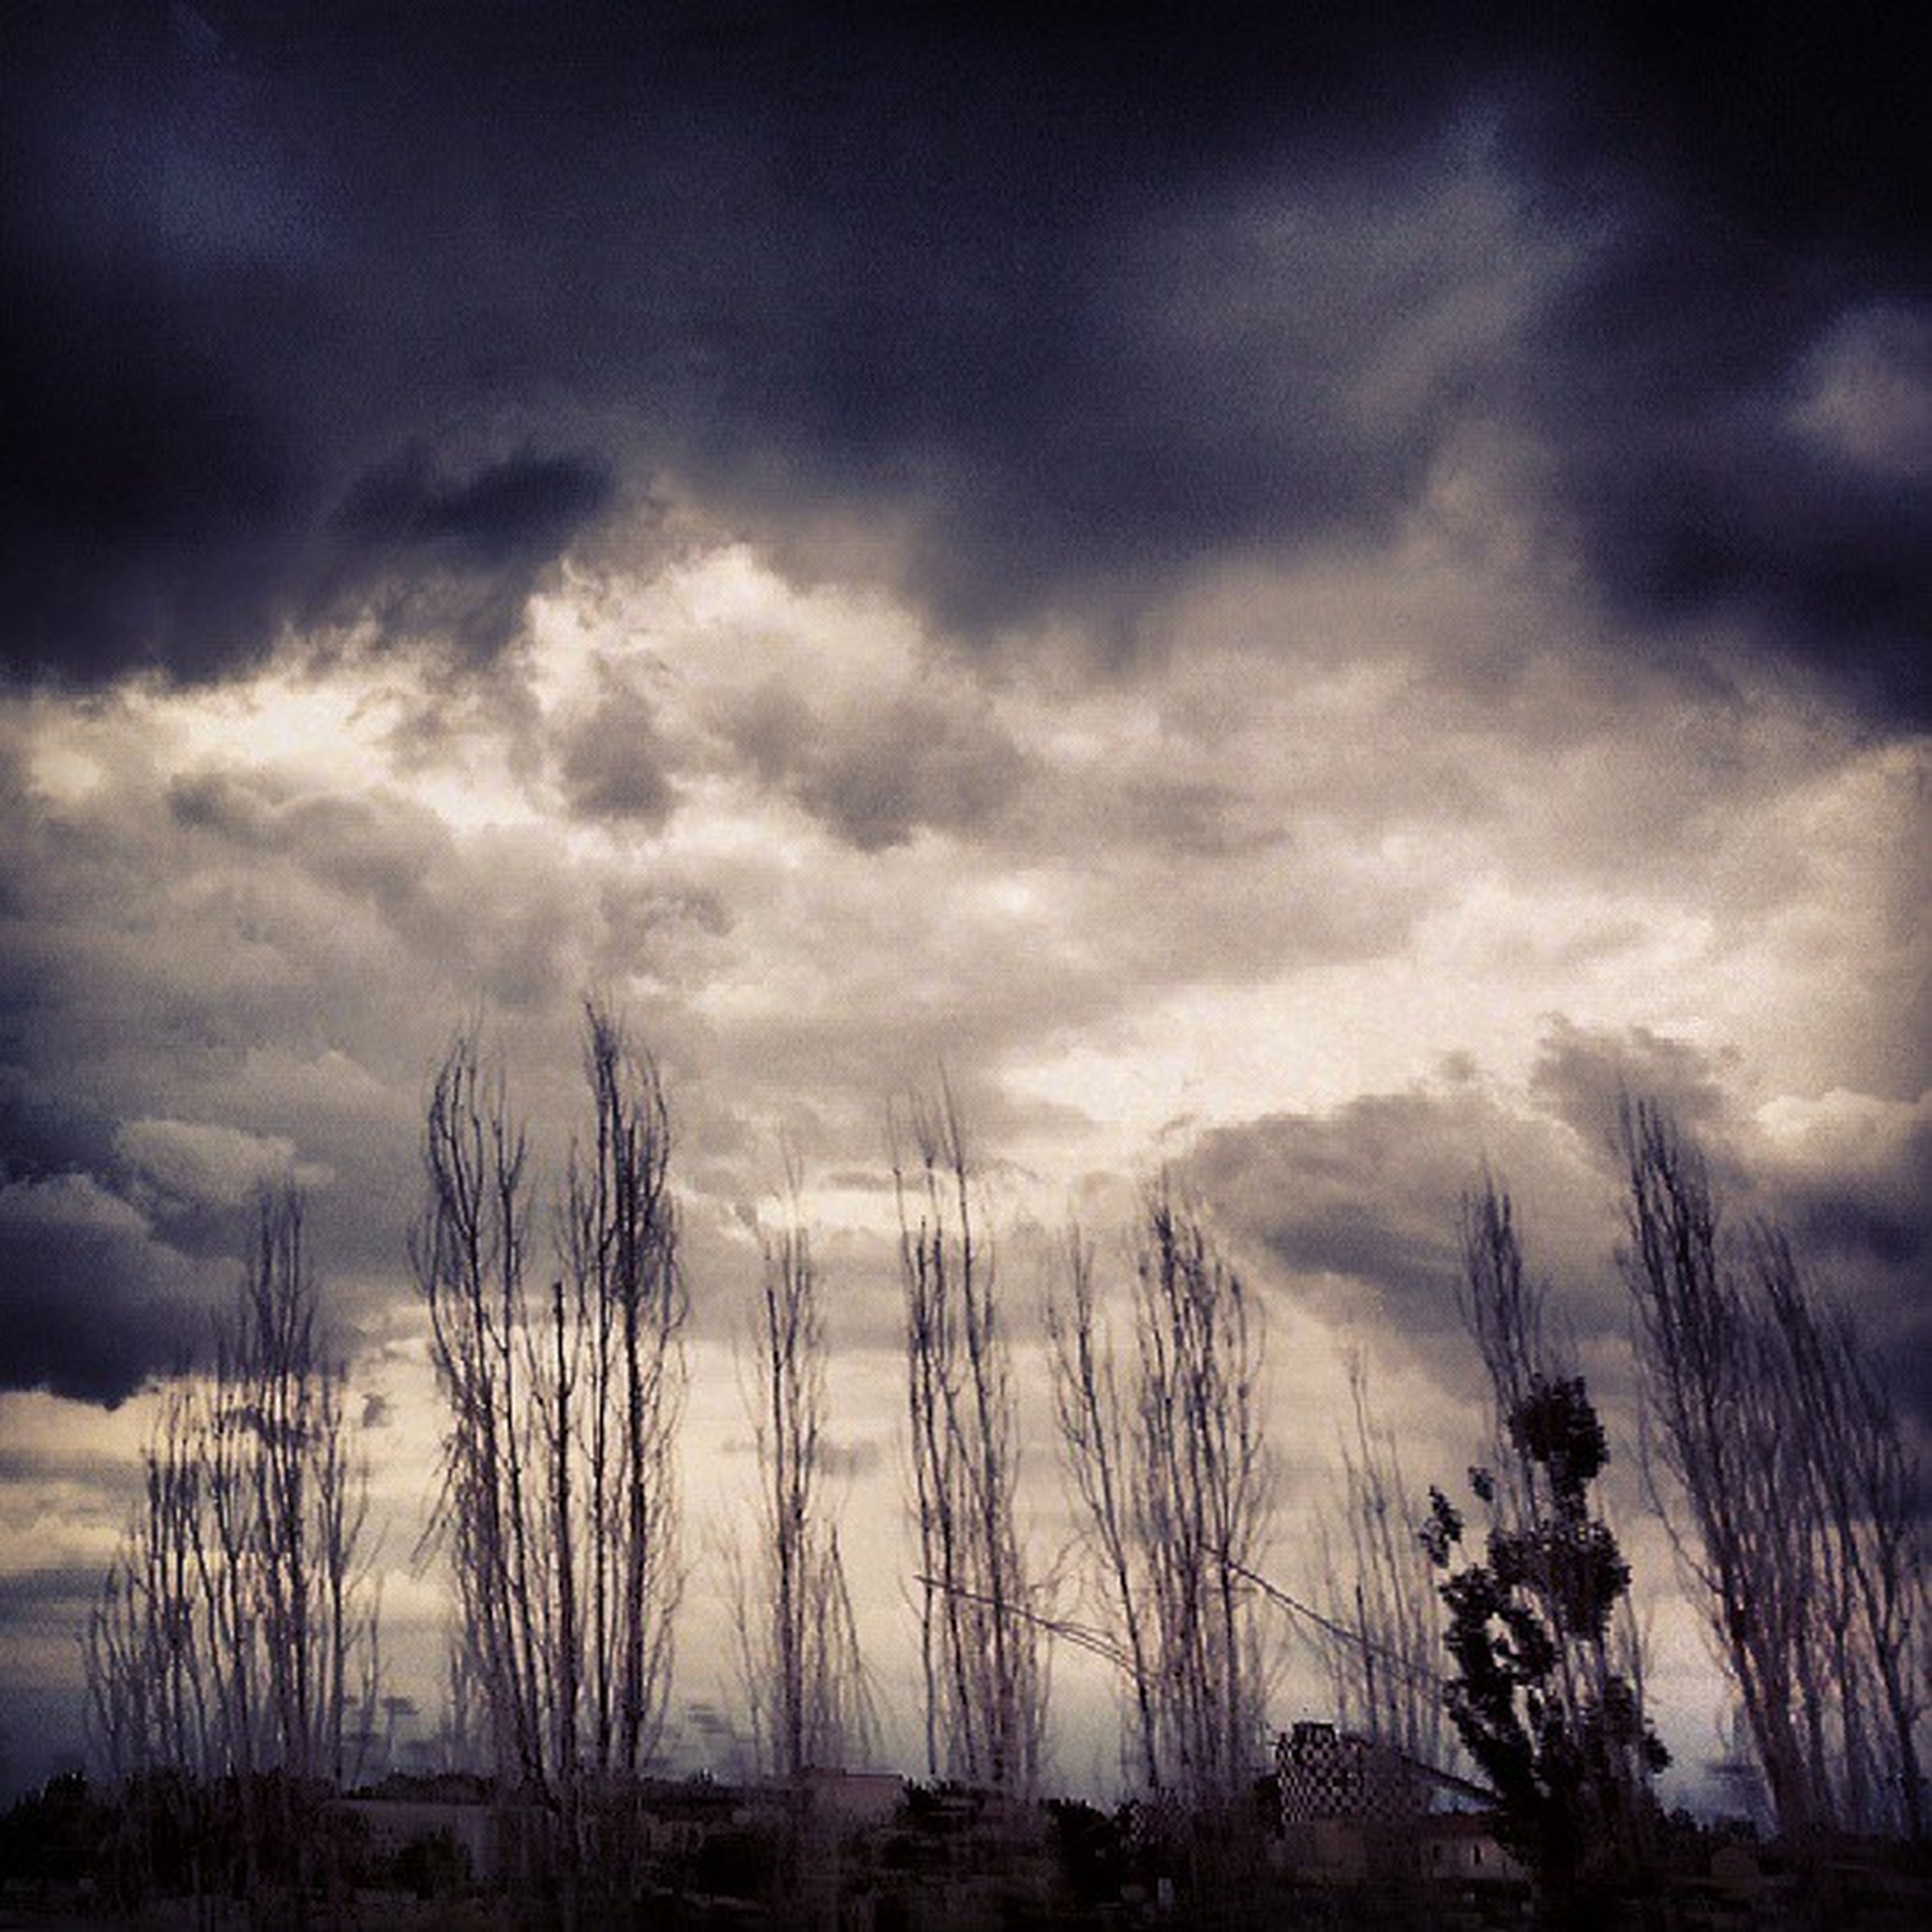 sky, cloud - sky, tranquility, cloudy, silhouette, tranquil scene, bare tree, tree, scenics, nature, beauty in nature, cloud, weather, overcast, dusk, low angle view, growth, outdoors, branch, no people